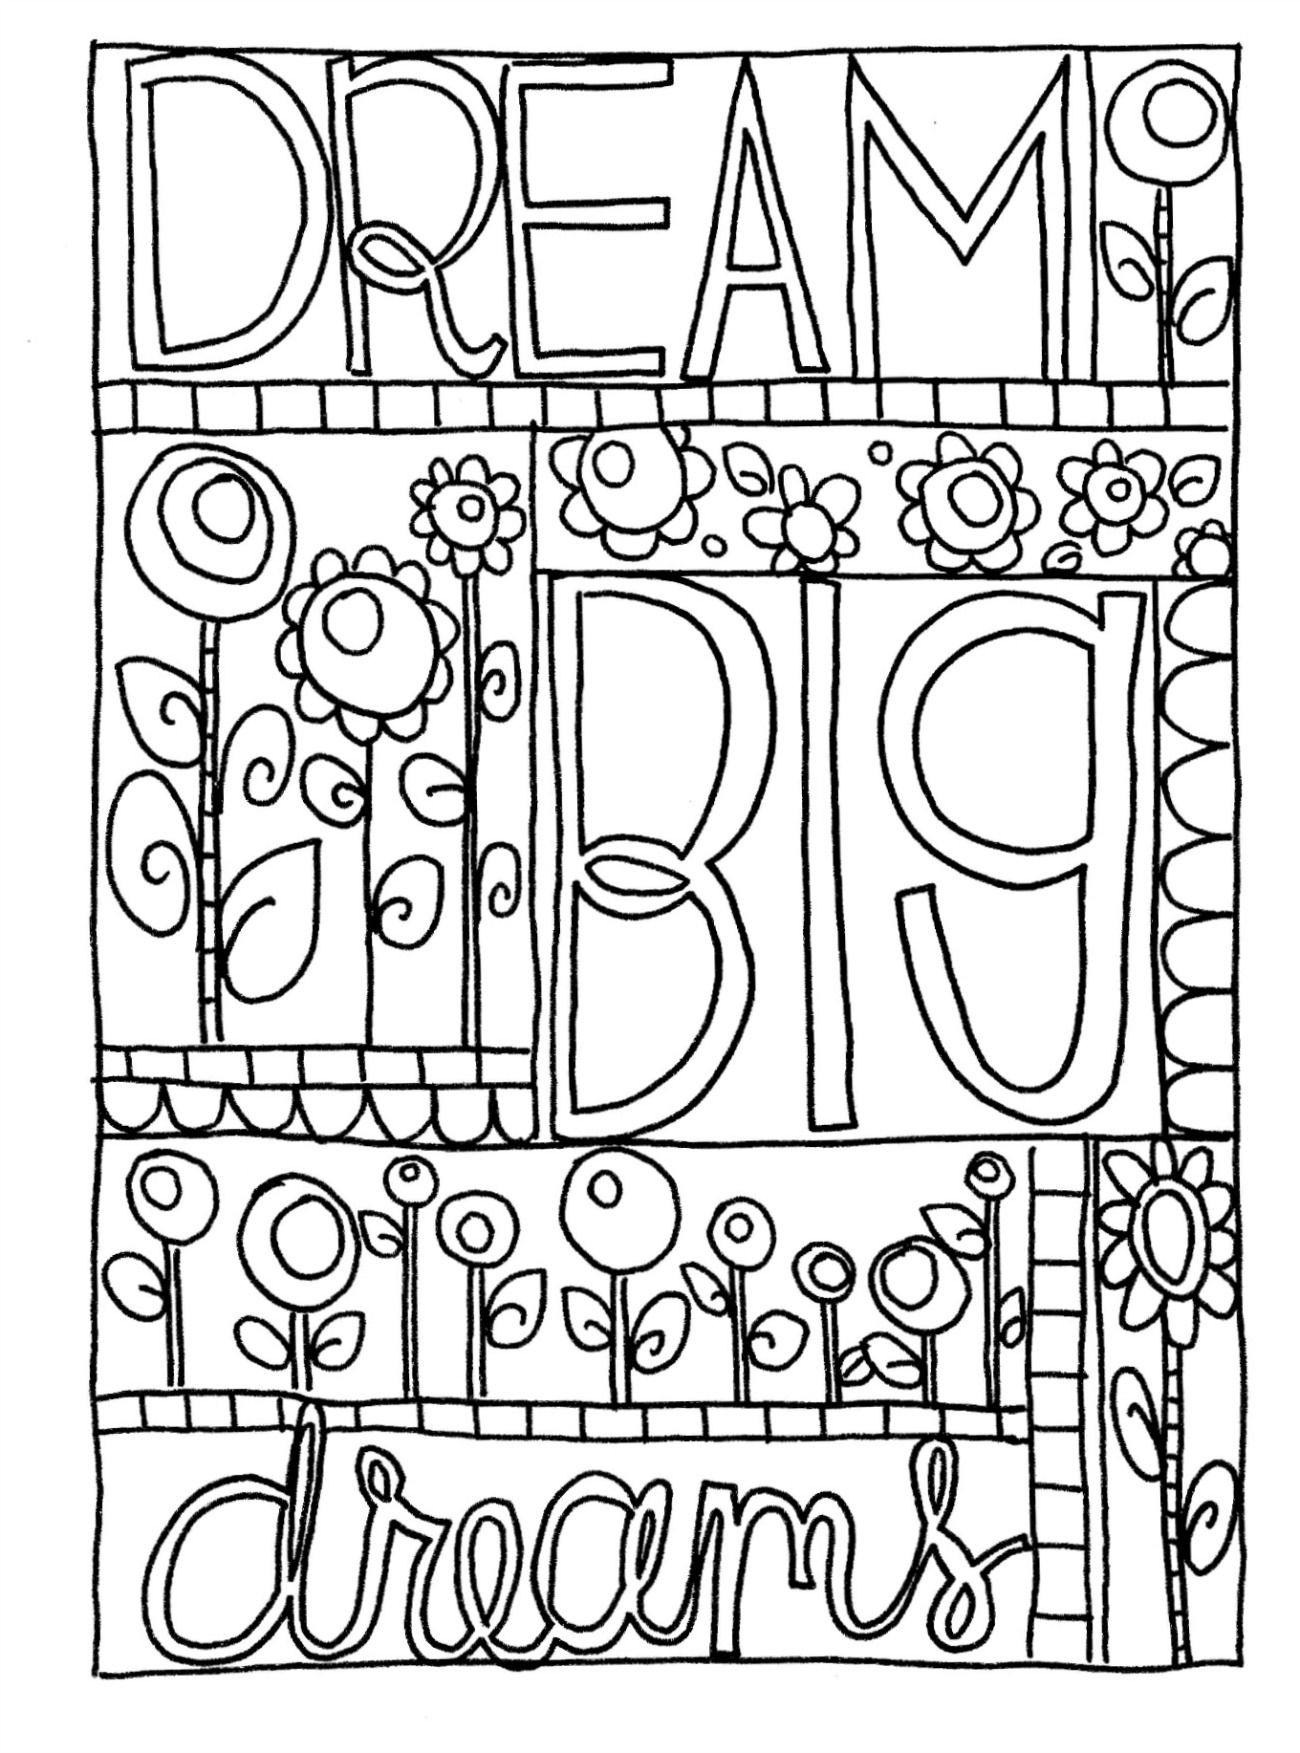 free doodle pages free colouring pages lj knight free doodle pages